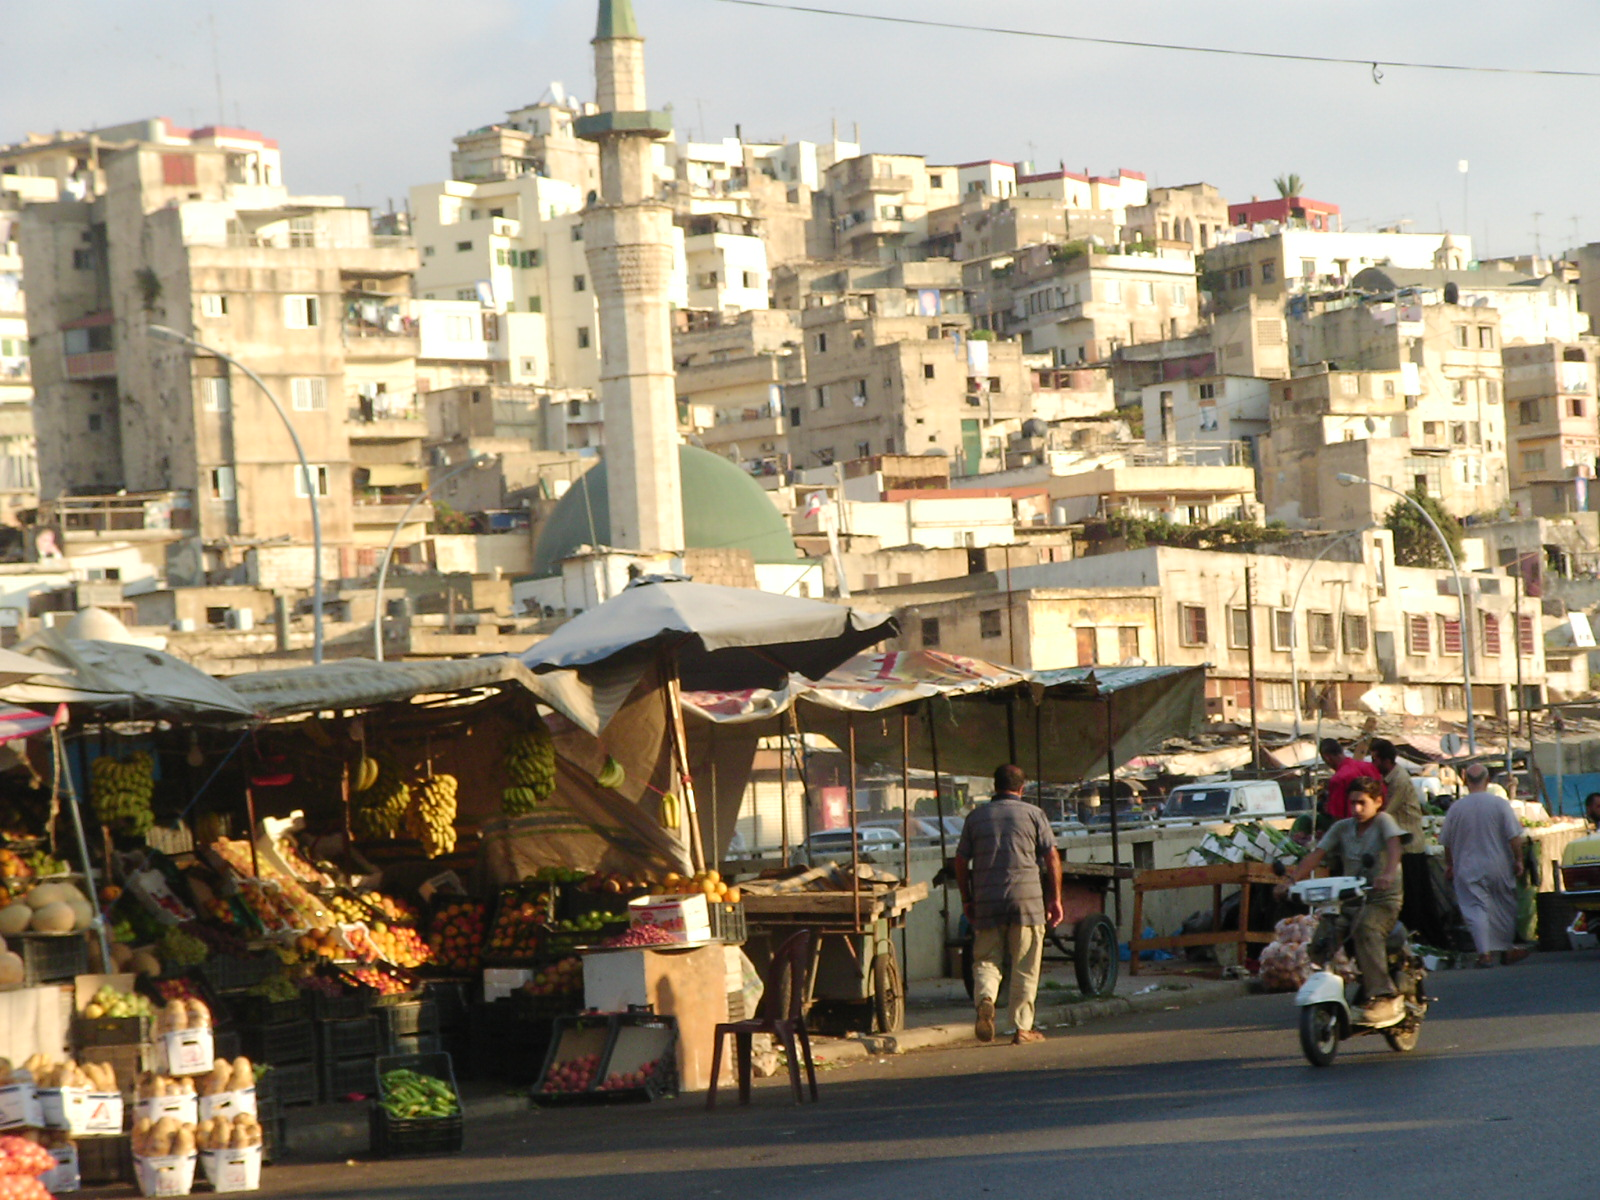 Tripoli - another big Lebanese city